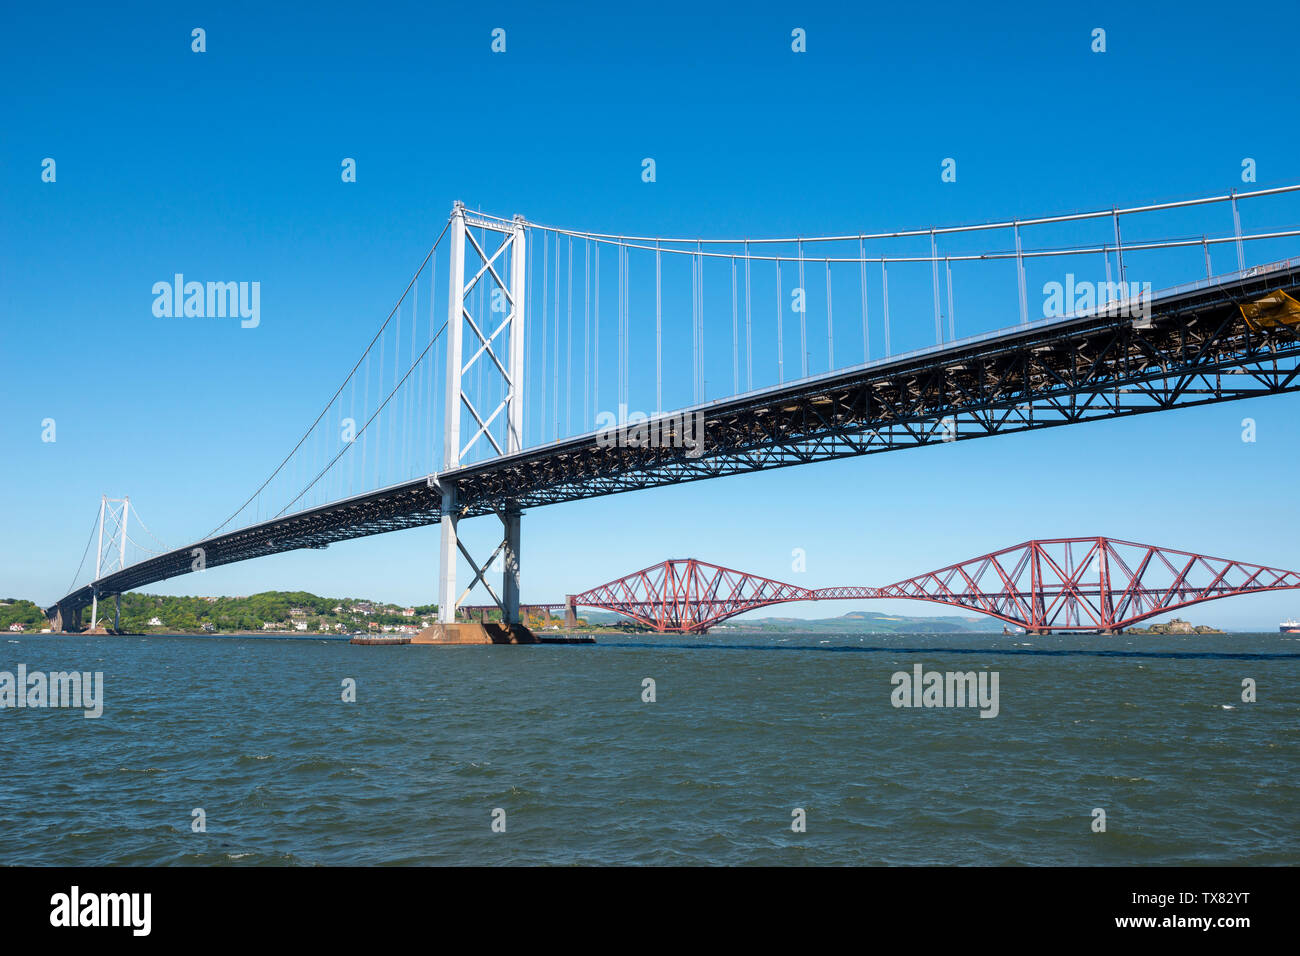 Forth Road Bridge and Forth Railway Bridge spanning River Forth viewed from Port Edgar, Queensferry, Scotland, UK Stock Photo